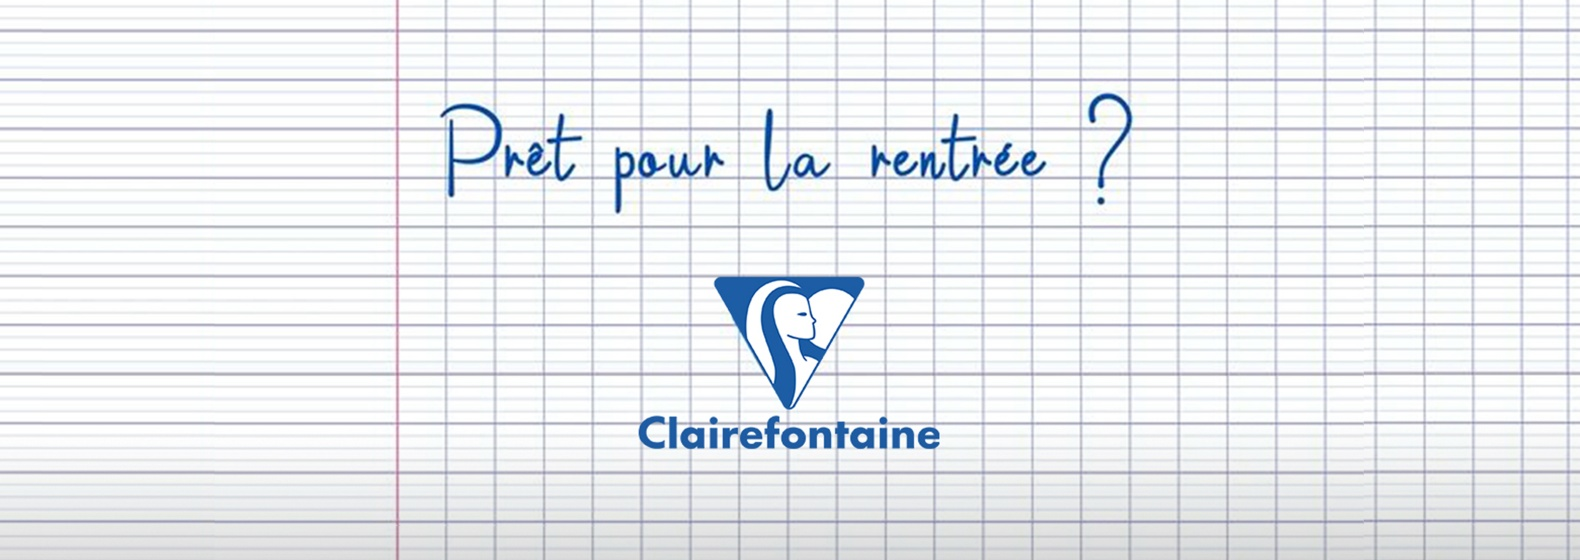 clairefontaine-r.jpg